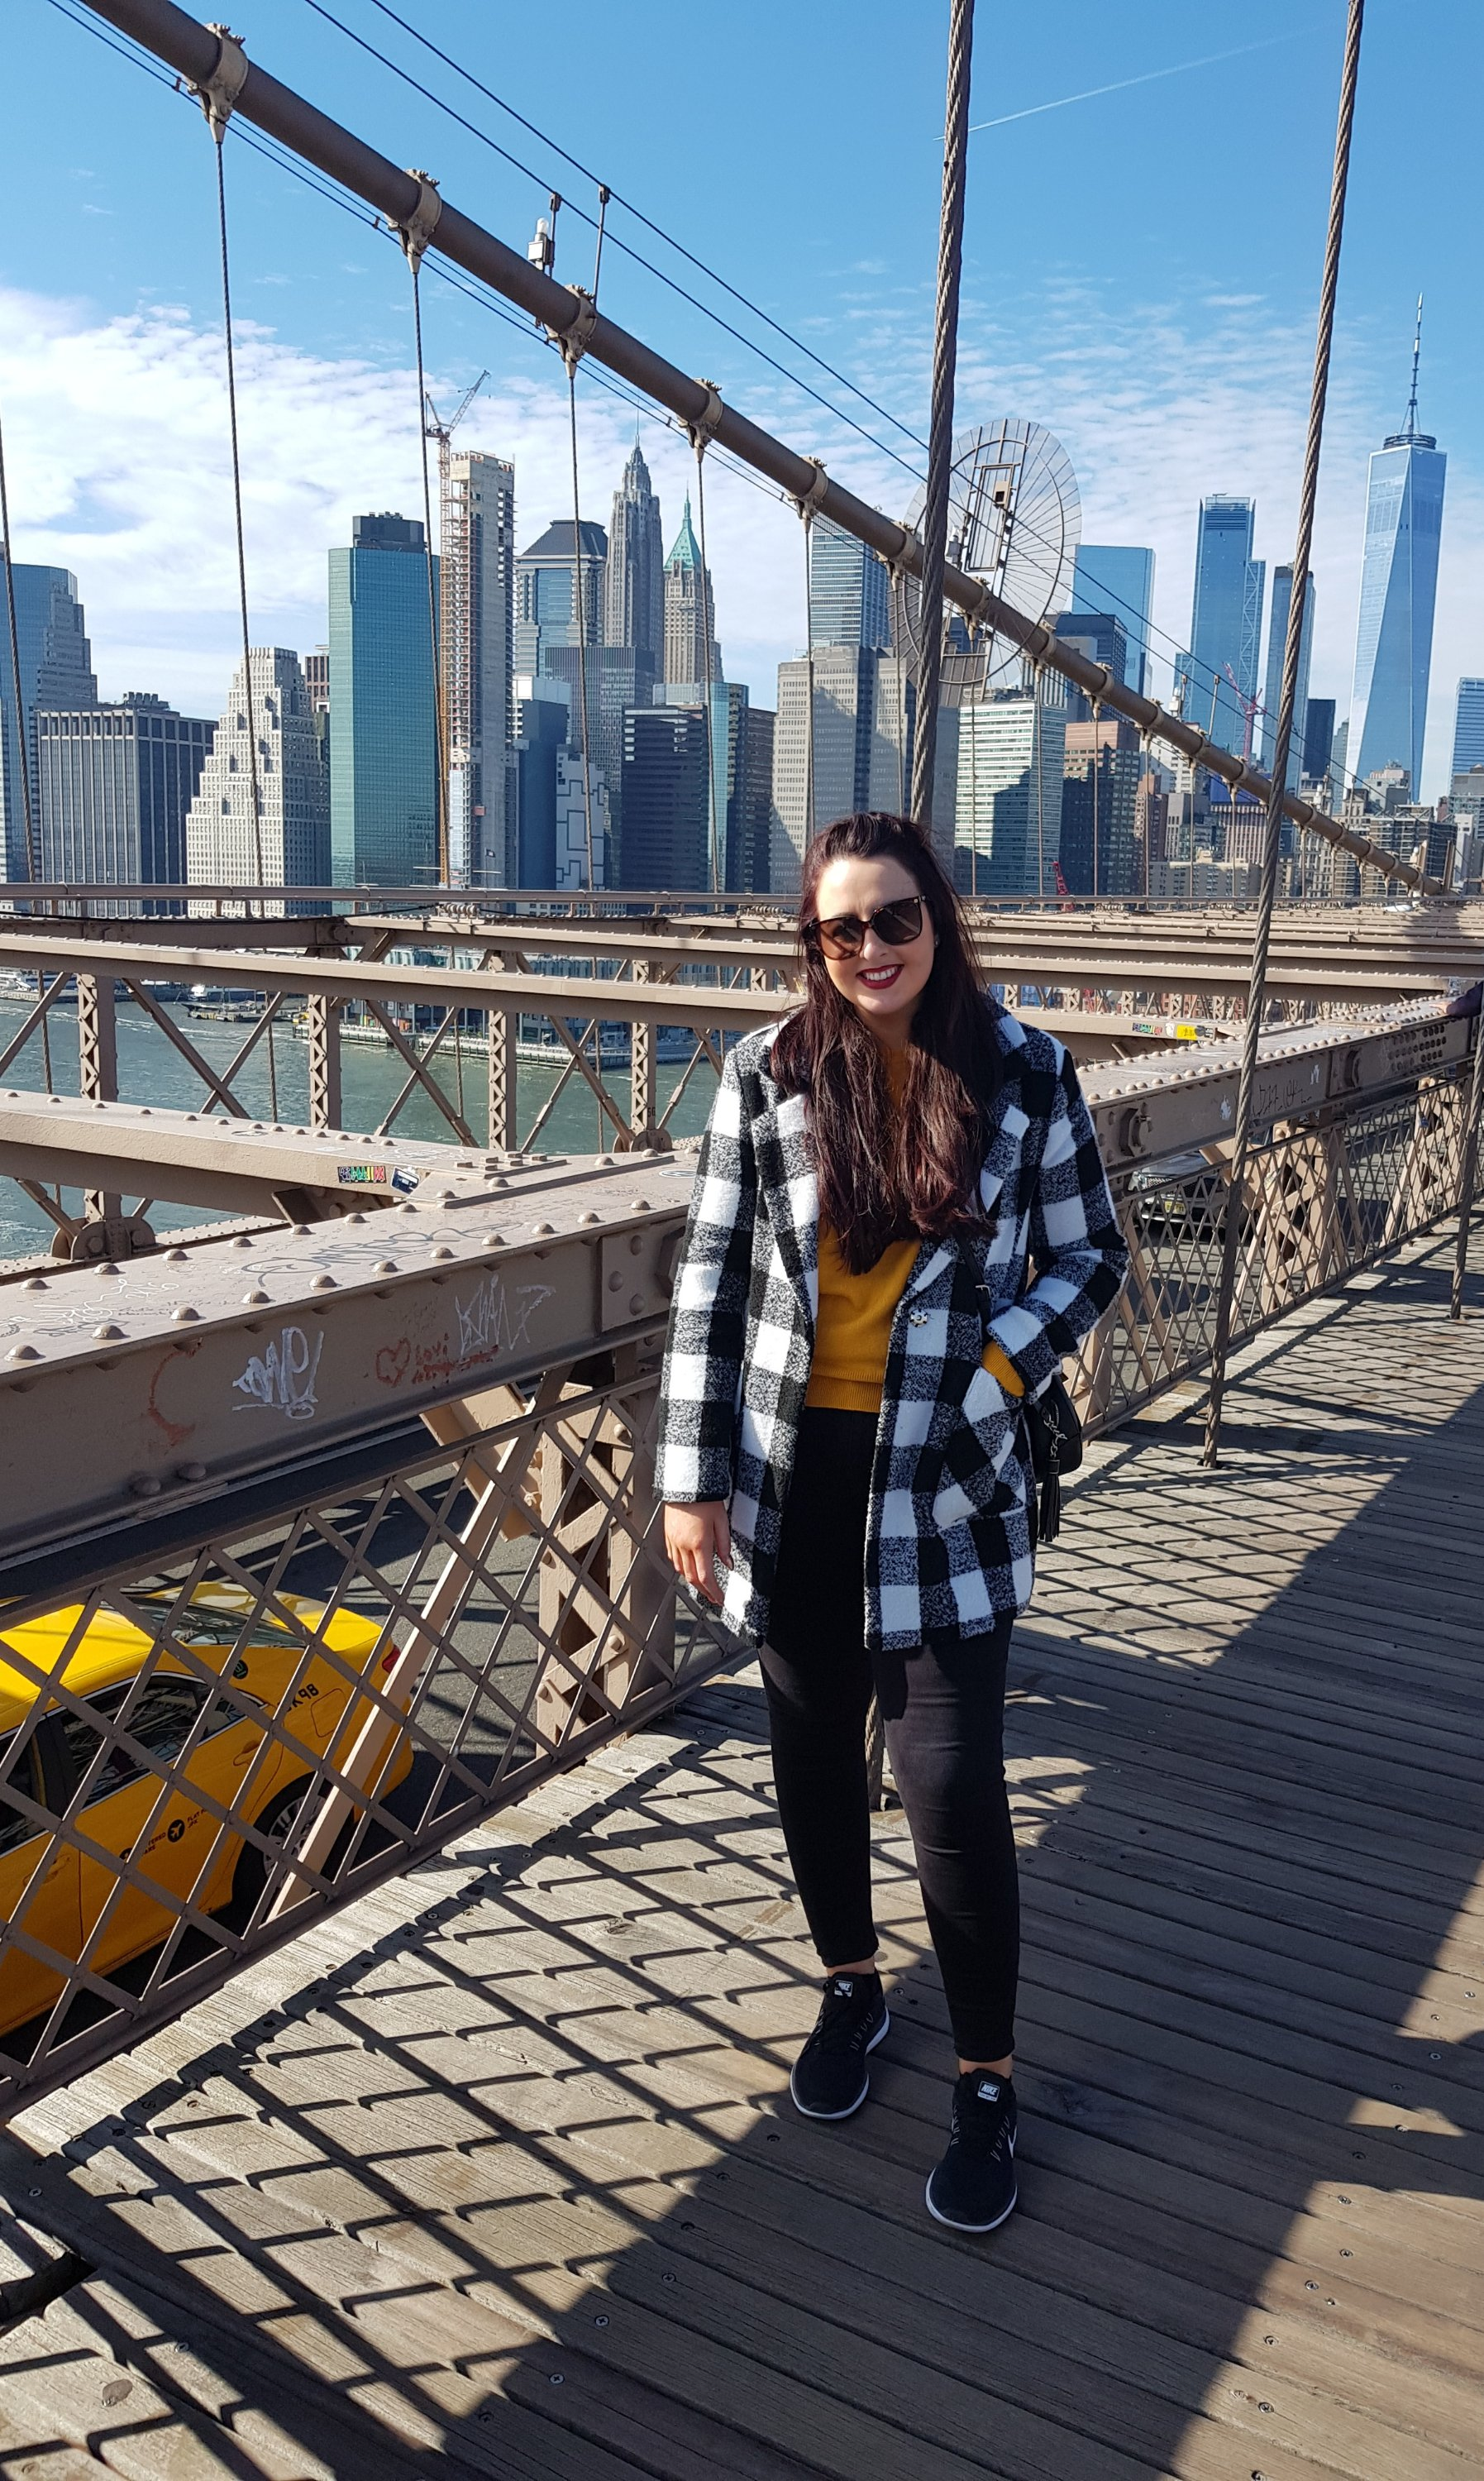 New York, Brooklyn bridge, dumbo, Brooklyn, Manhattan, skyline